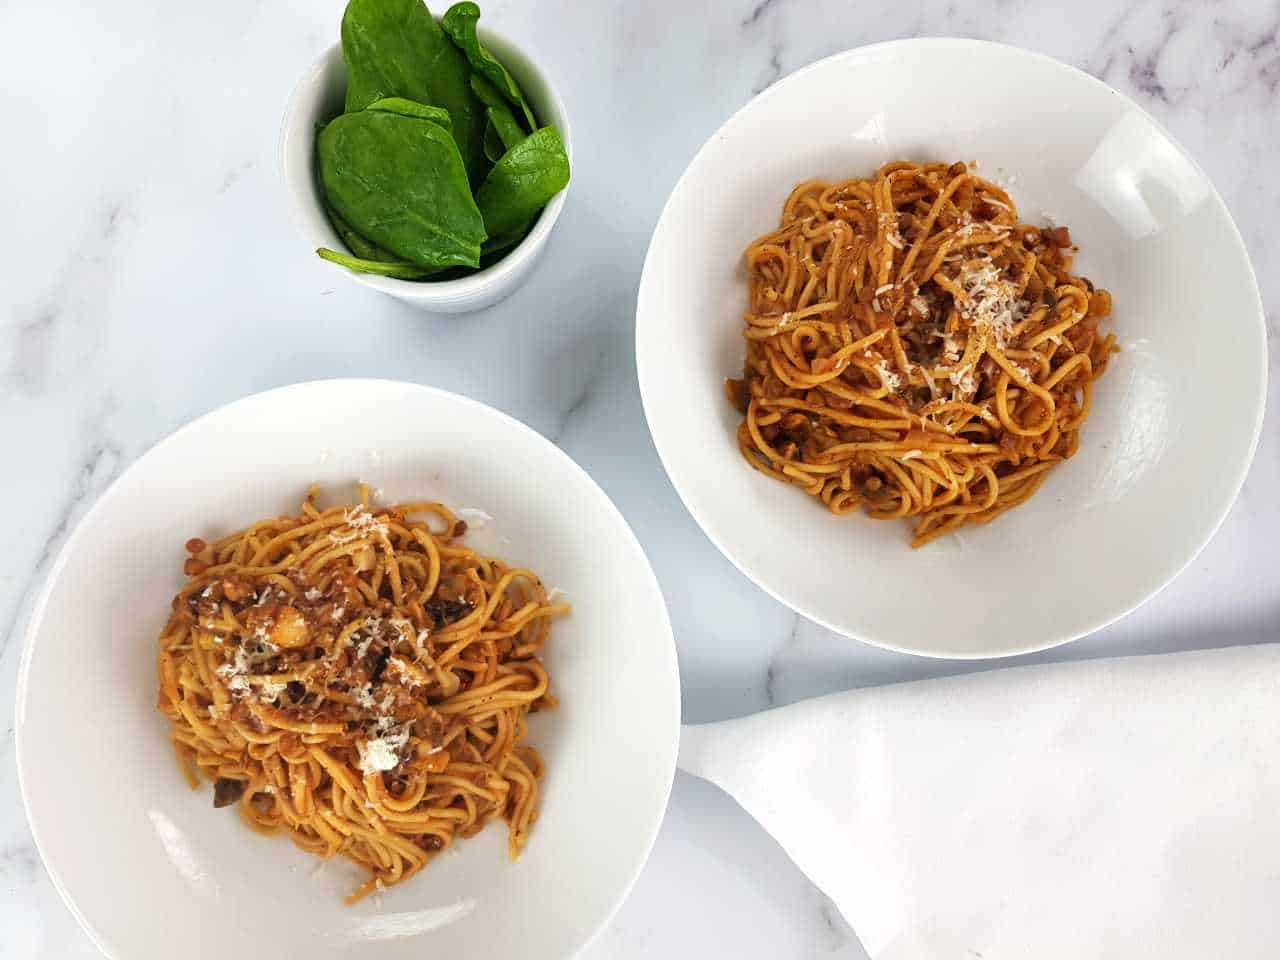 Mushroom and lentil bolognese in white pasta bowls with a bowl of spinach and a white napkin on a marble table.